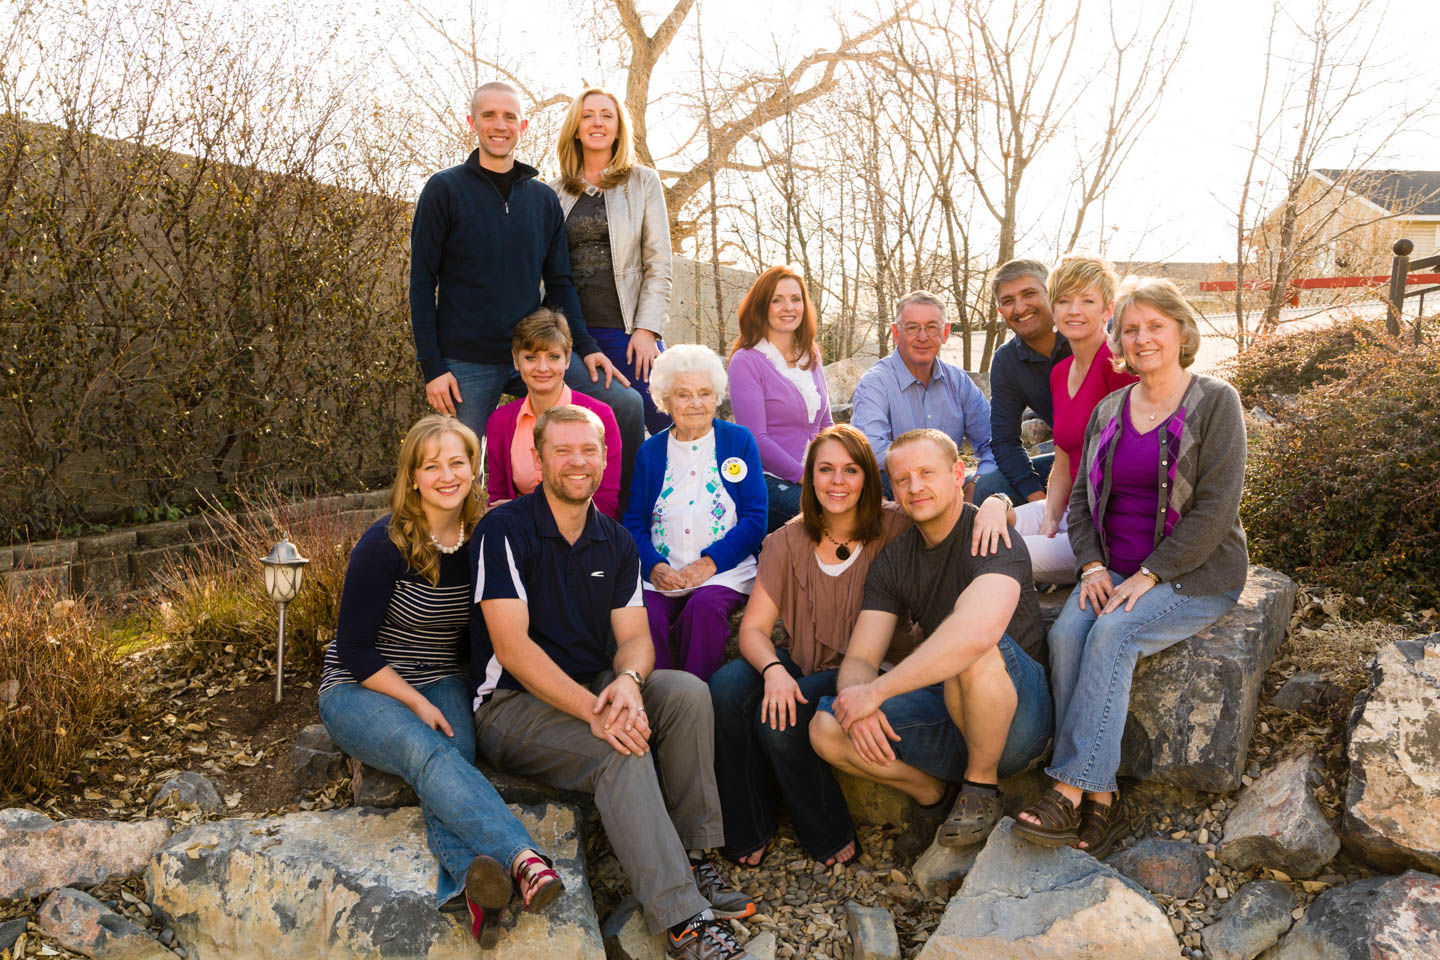 Bush family with their spouses